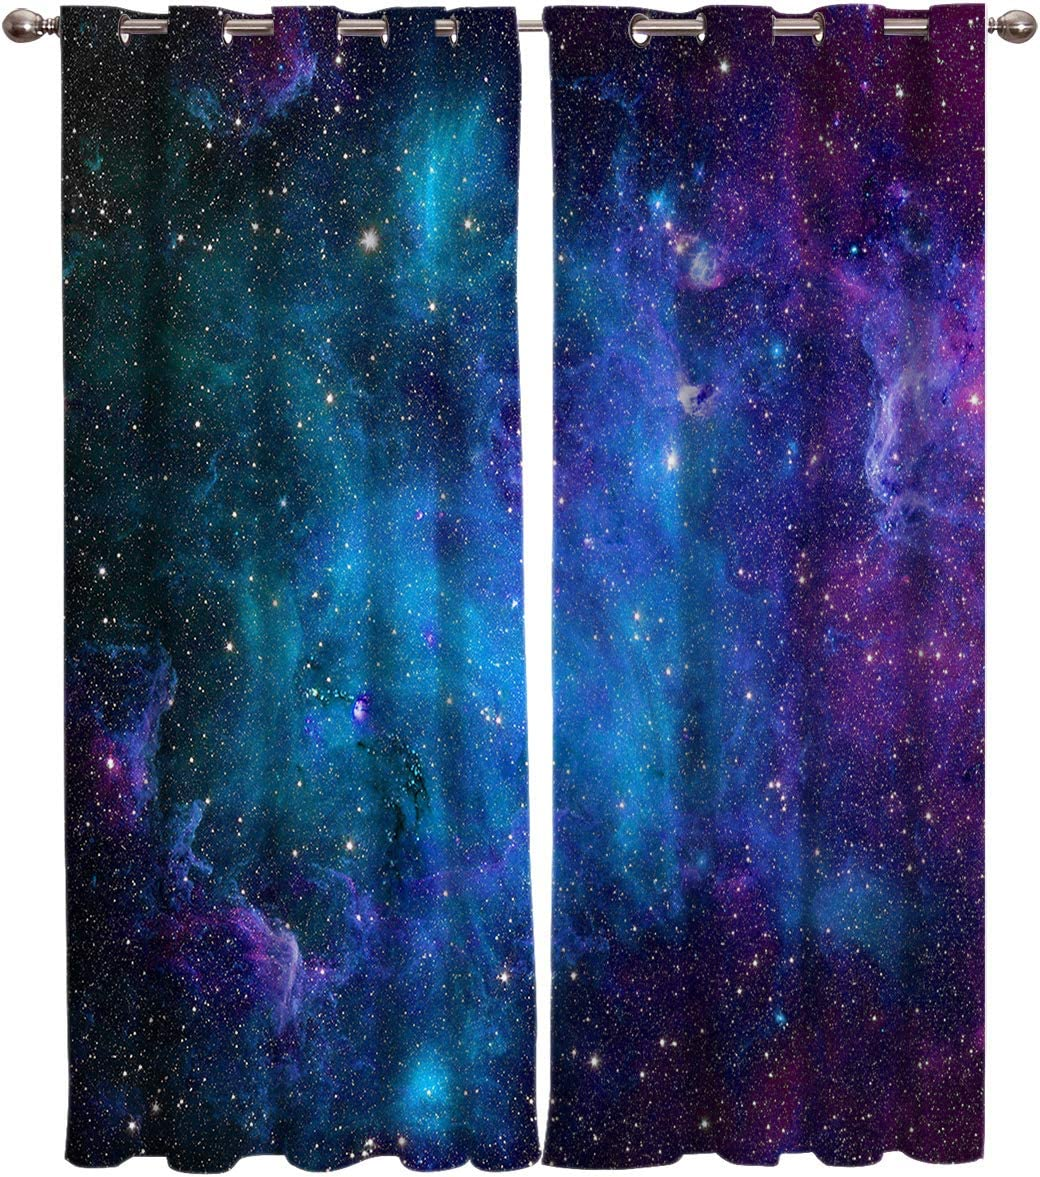 Curtains 40 inch Wide by 63 inch Length for Living Room Bedroom, Blackout Room Darkening Galaxy Stars Universe Planet Nebula Starry Sky Window Curtain Thermal Insulated with Grommet Drapes, 2 Panels